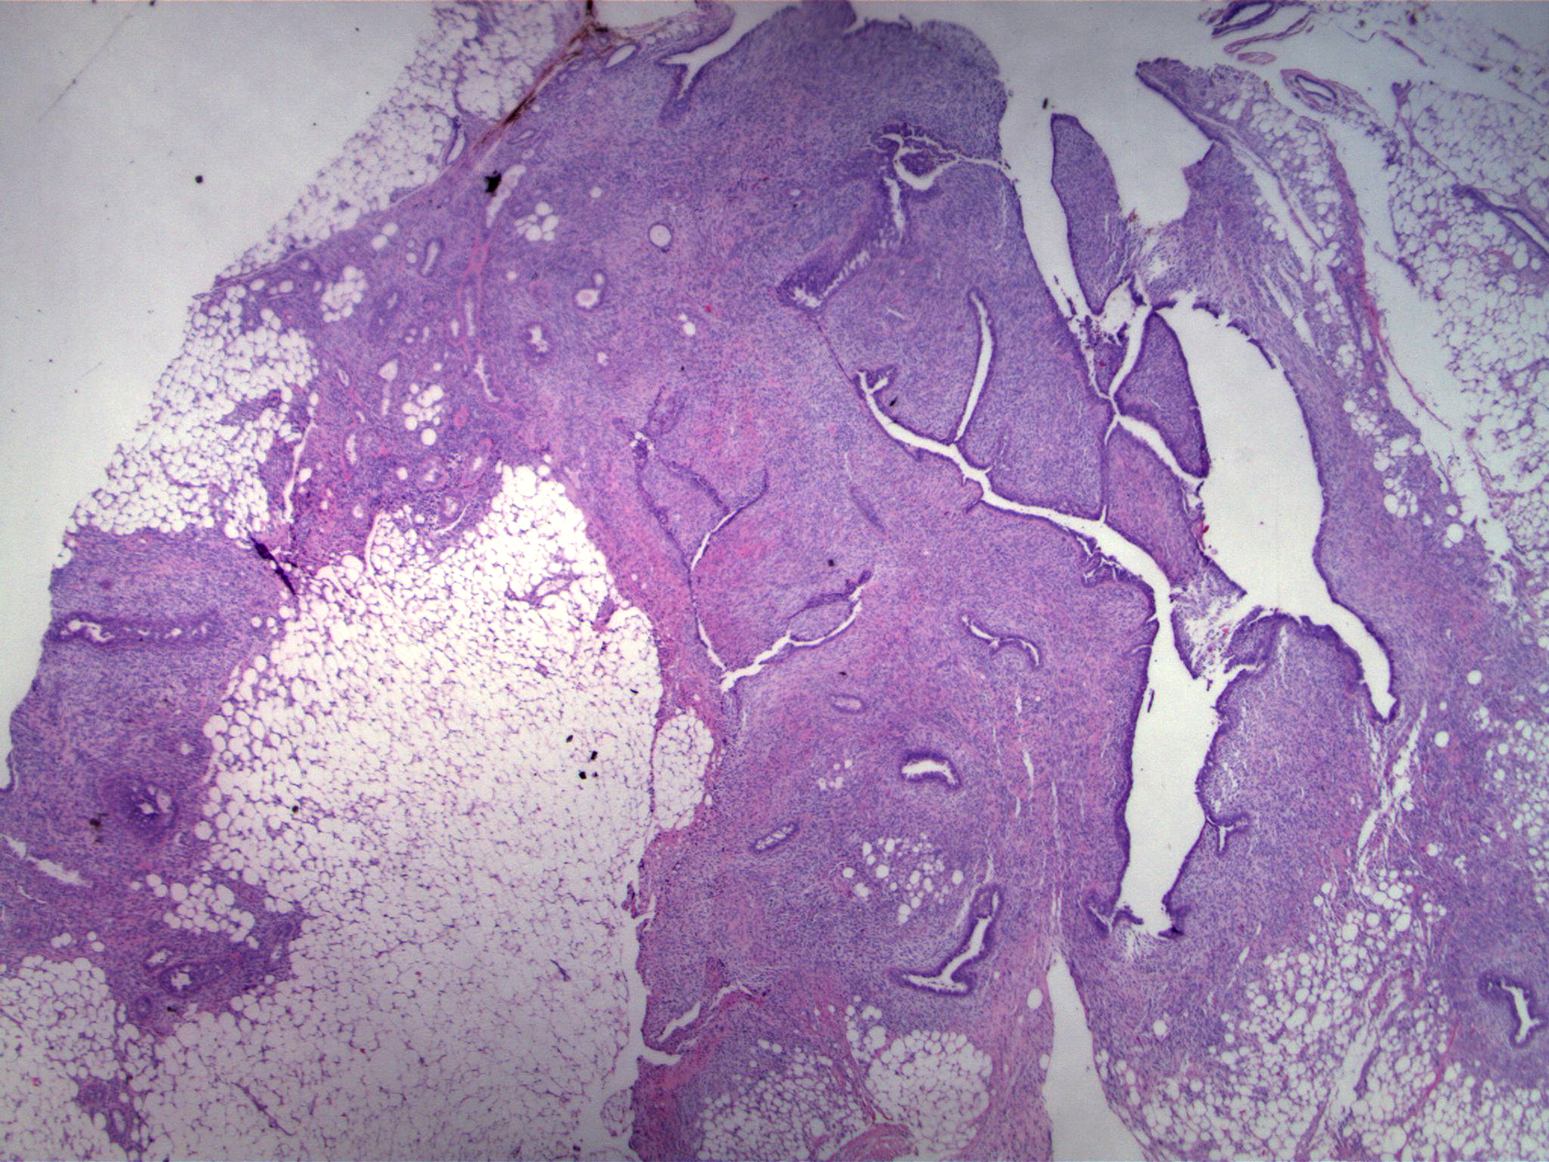 low power magnification shows a fibroepthelial Lesion characterized by cellular stroma and distorted epithelial arrangements. The lesion appears to have an irregular interface with adjacent adipose tissue.